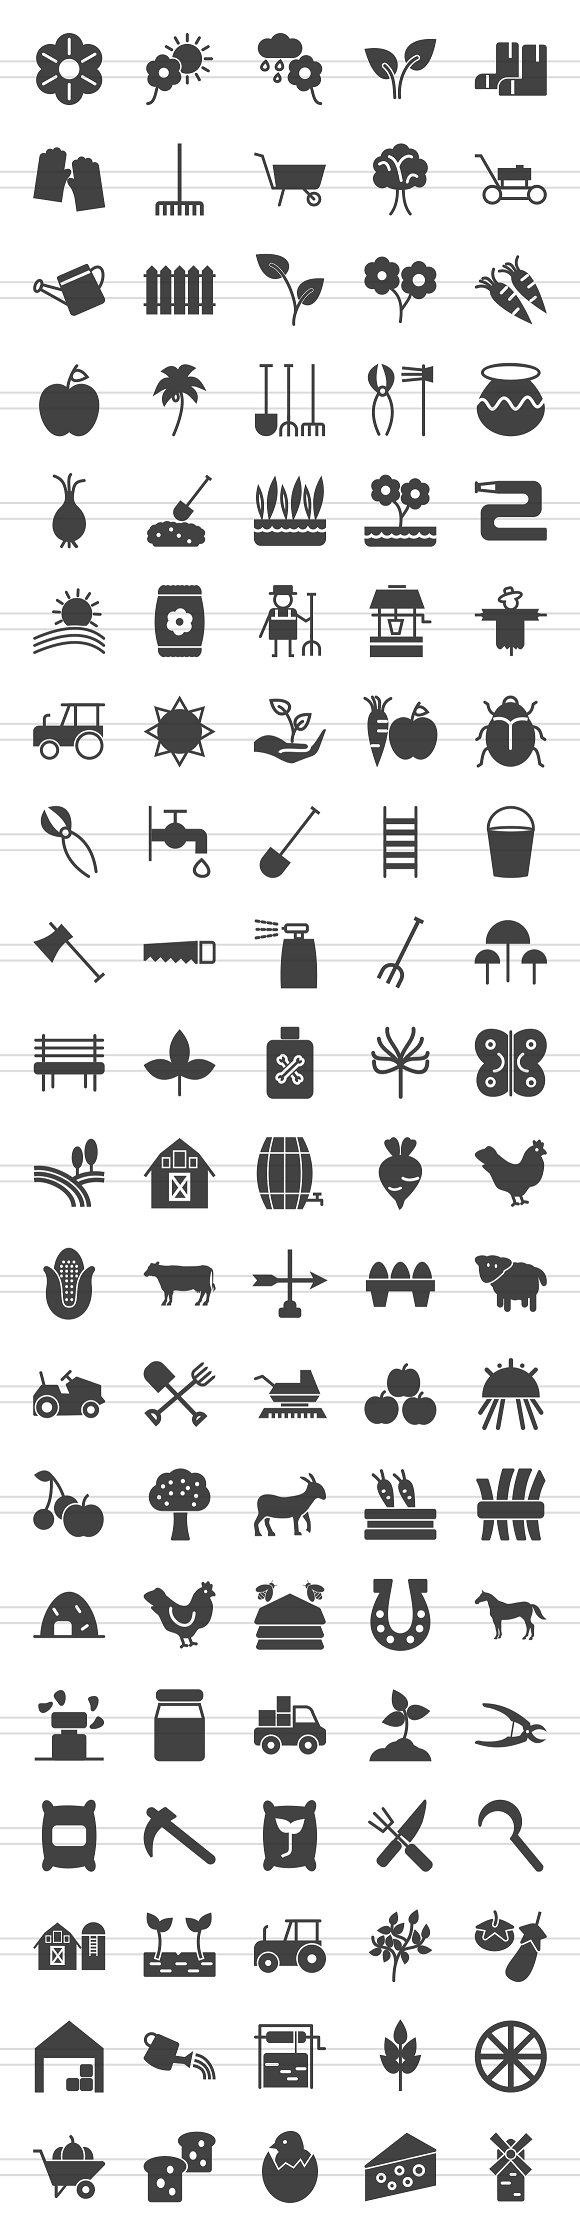 100 Farm & Gardening Glyph Icons in Icons - product preview 1